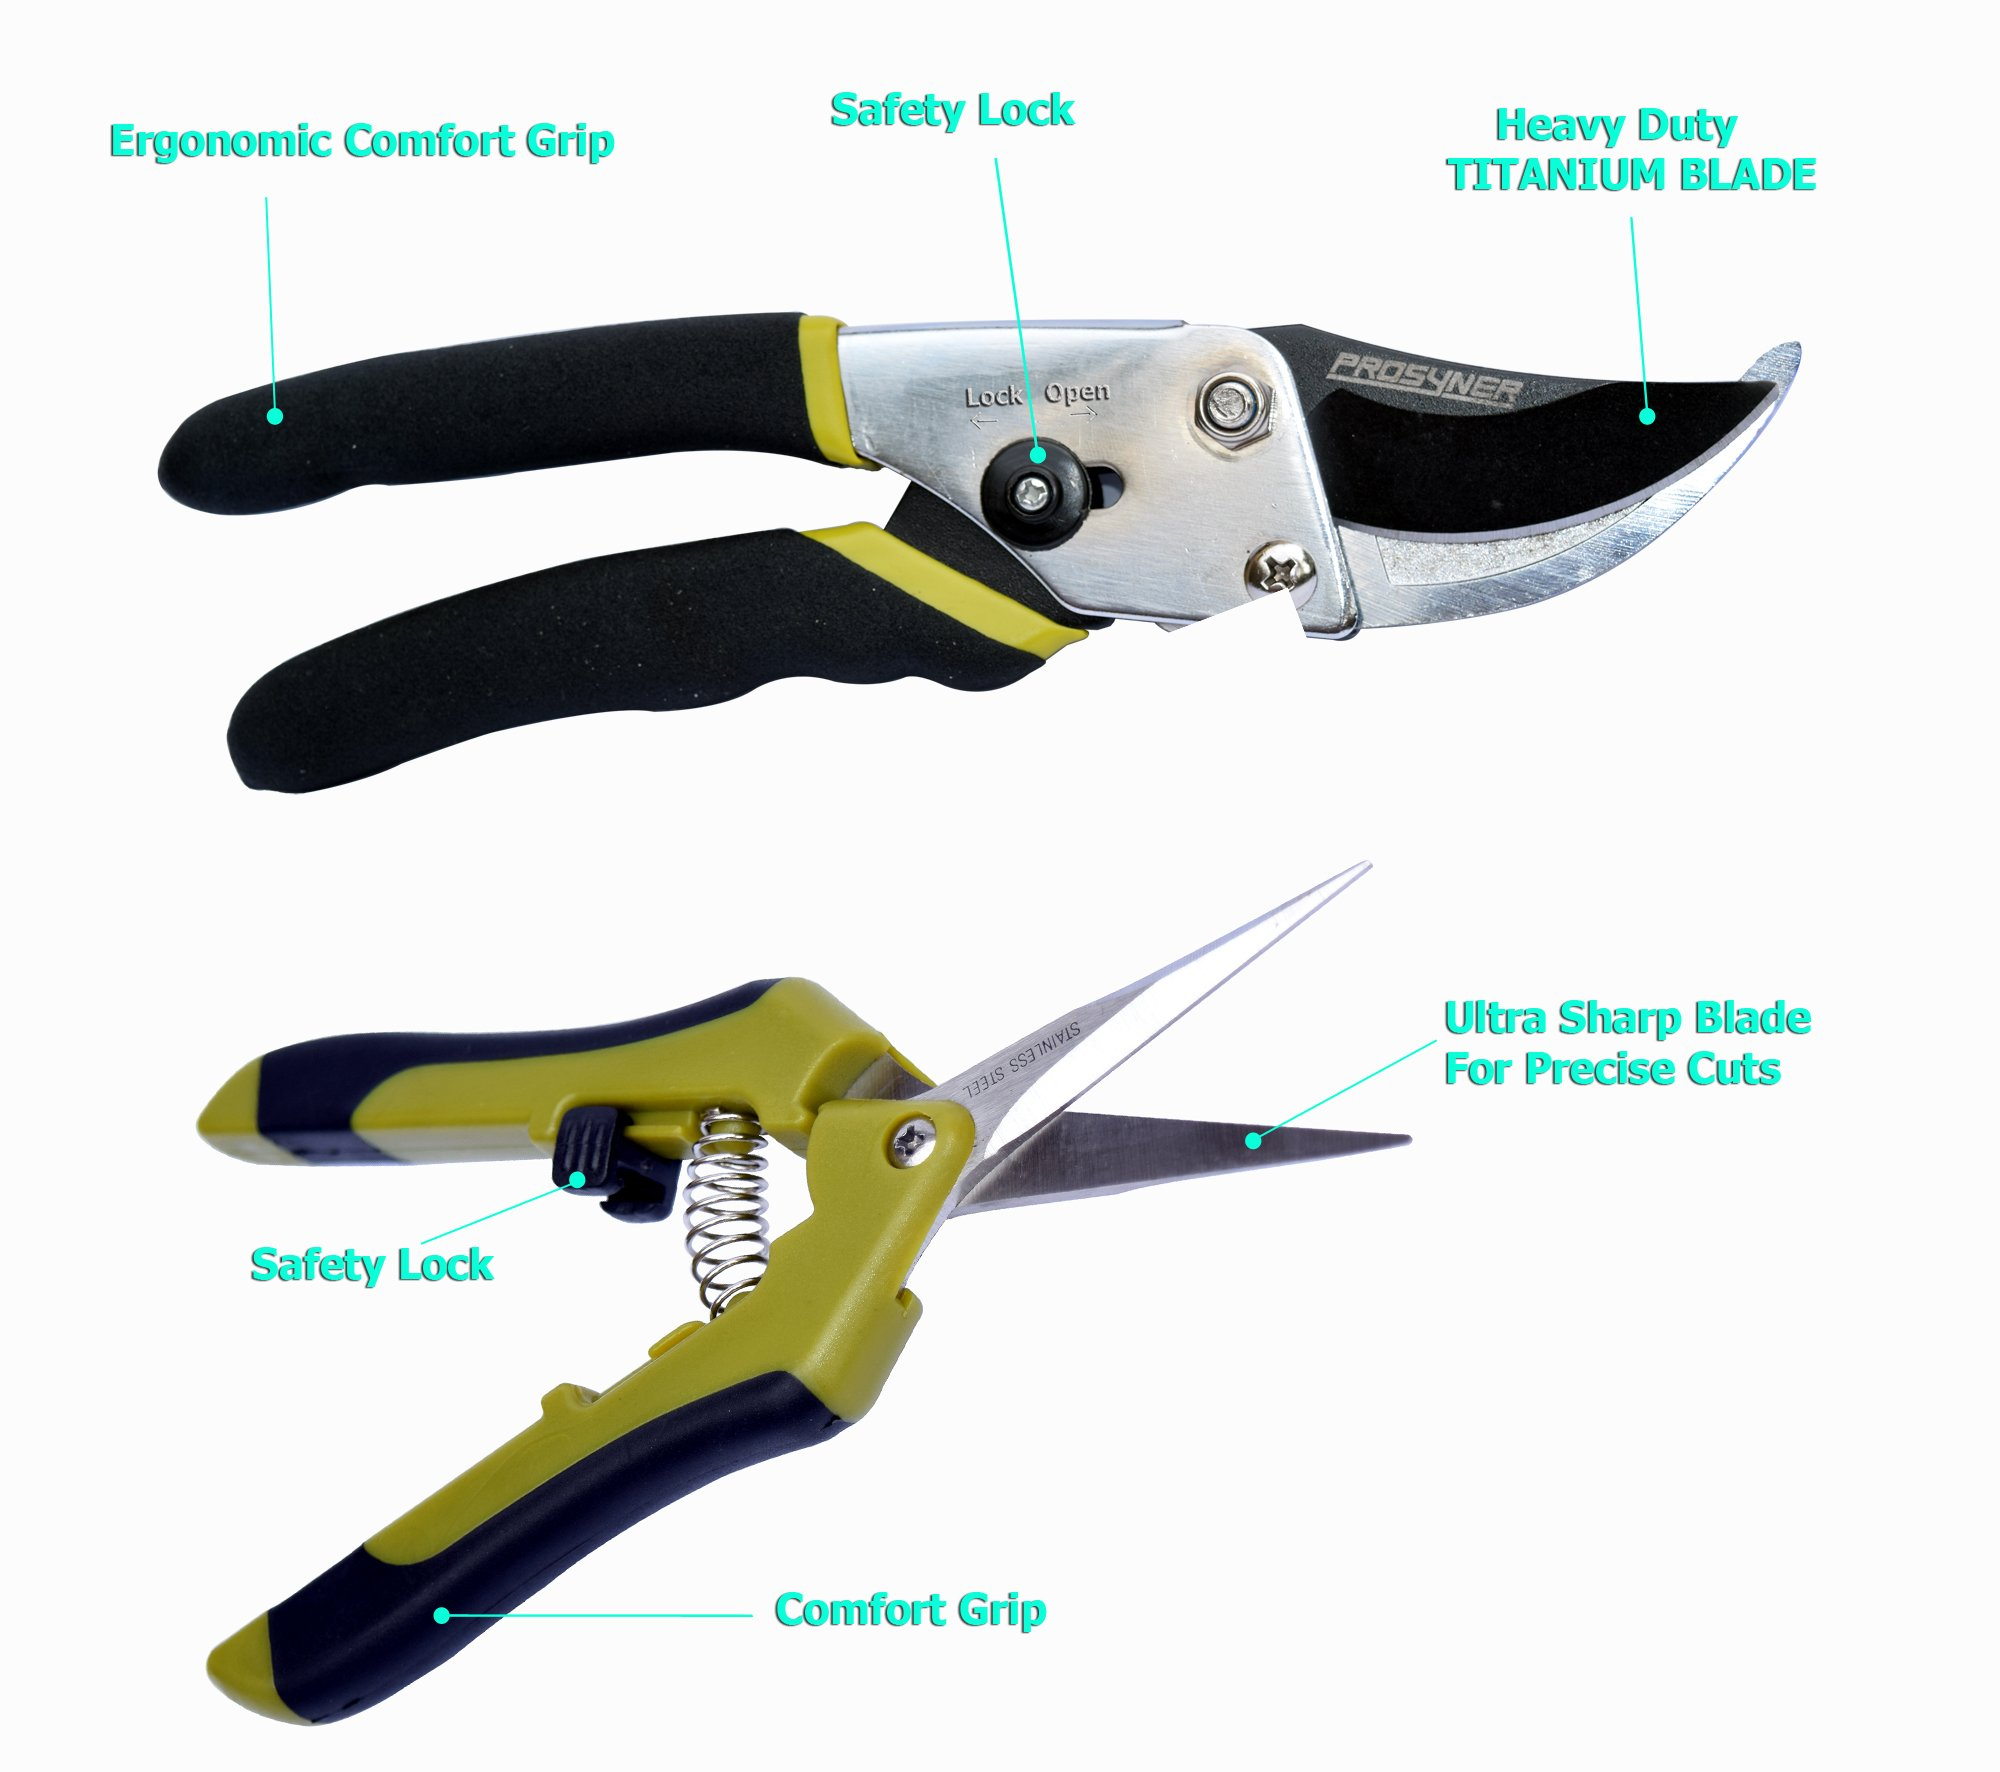 Bypass Pruning Shears Kit - Stainless Steel Gardening Hand Pruner and 1 Micro-Tip Snip Garden Clipper with Sharp Blades for Comfortable Trimming (Set of 2) by Prosyner (Image #6)